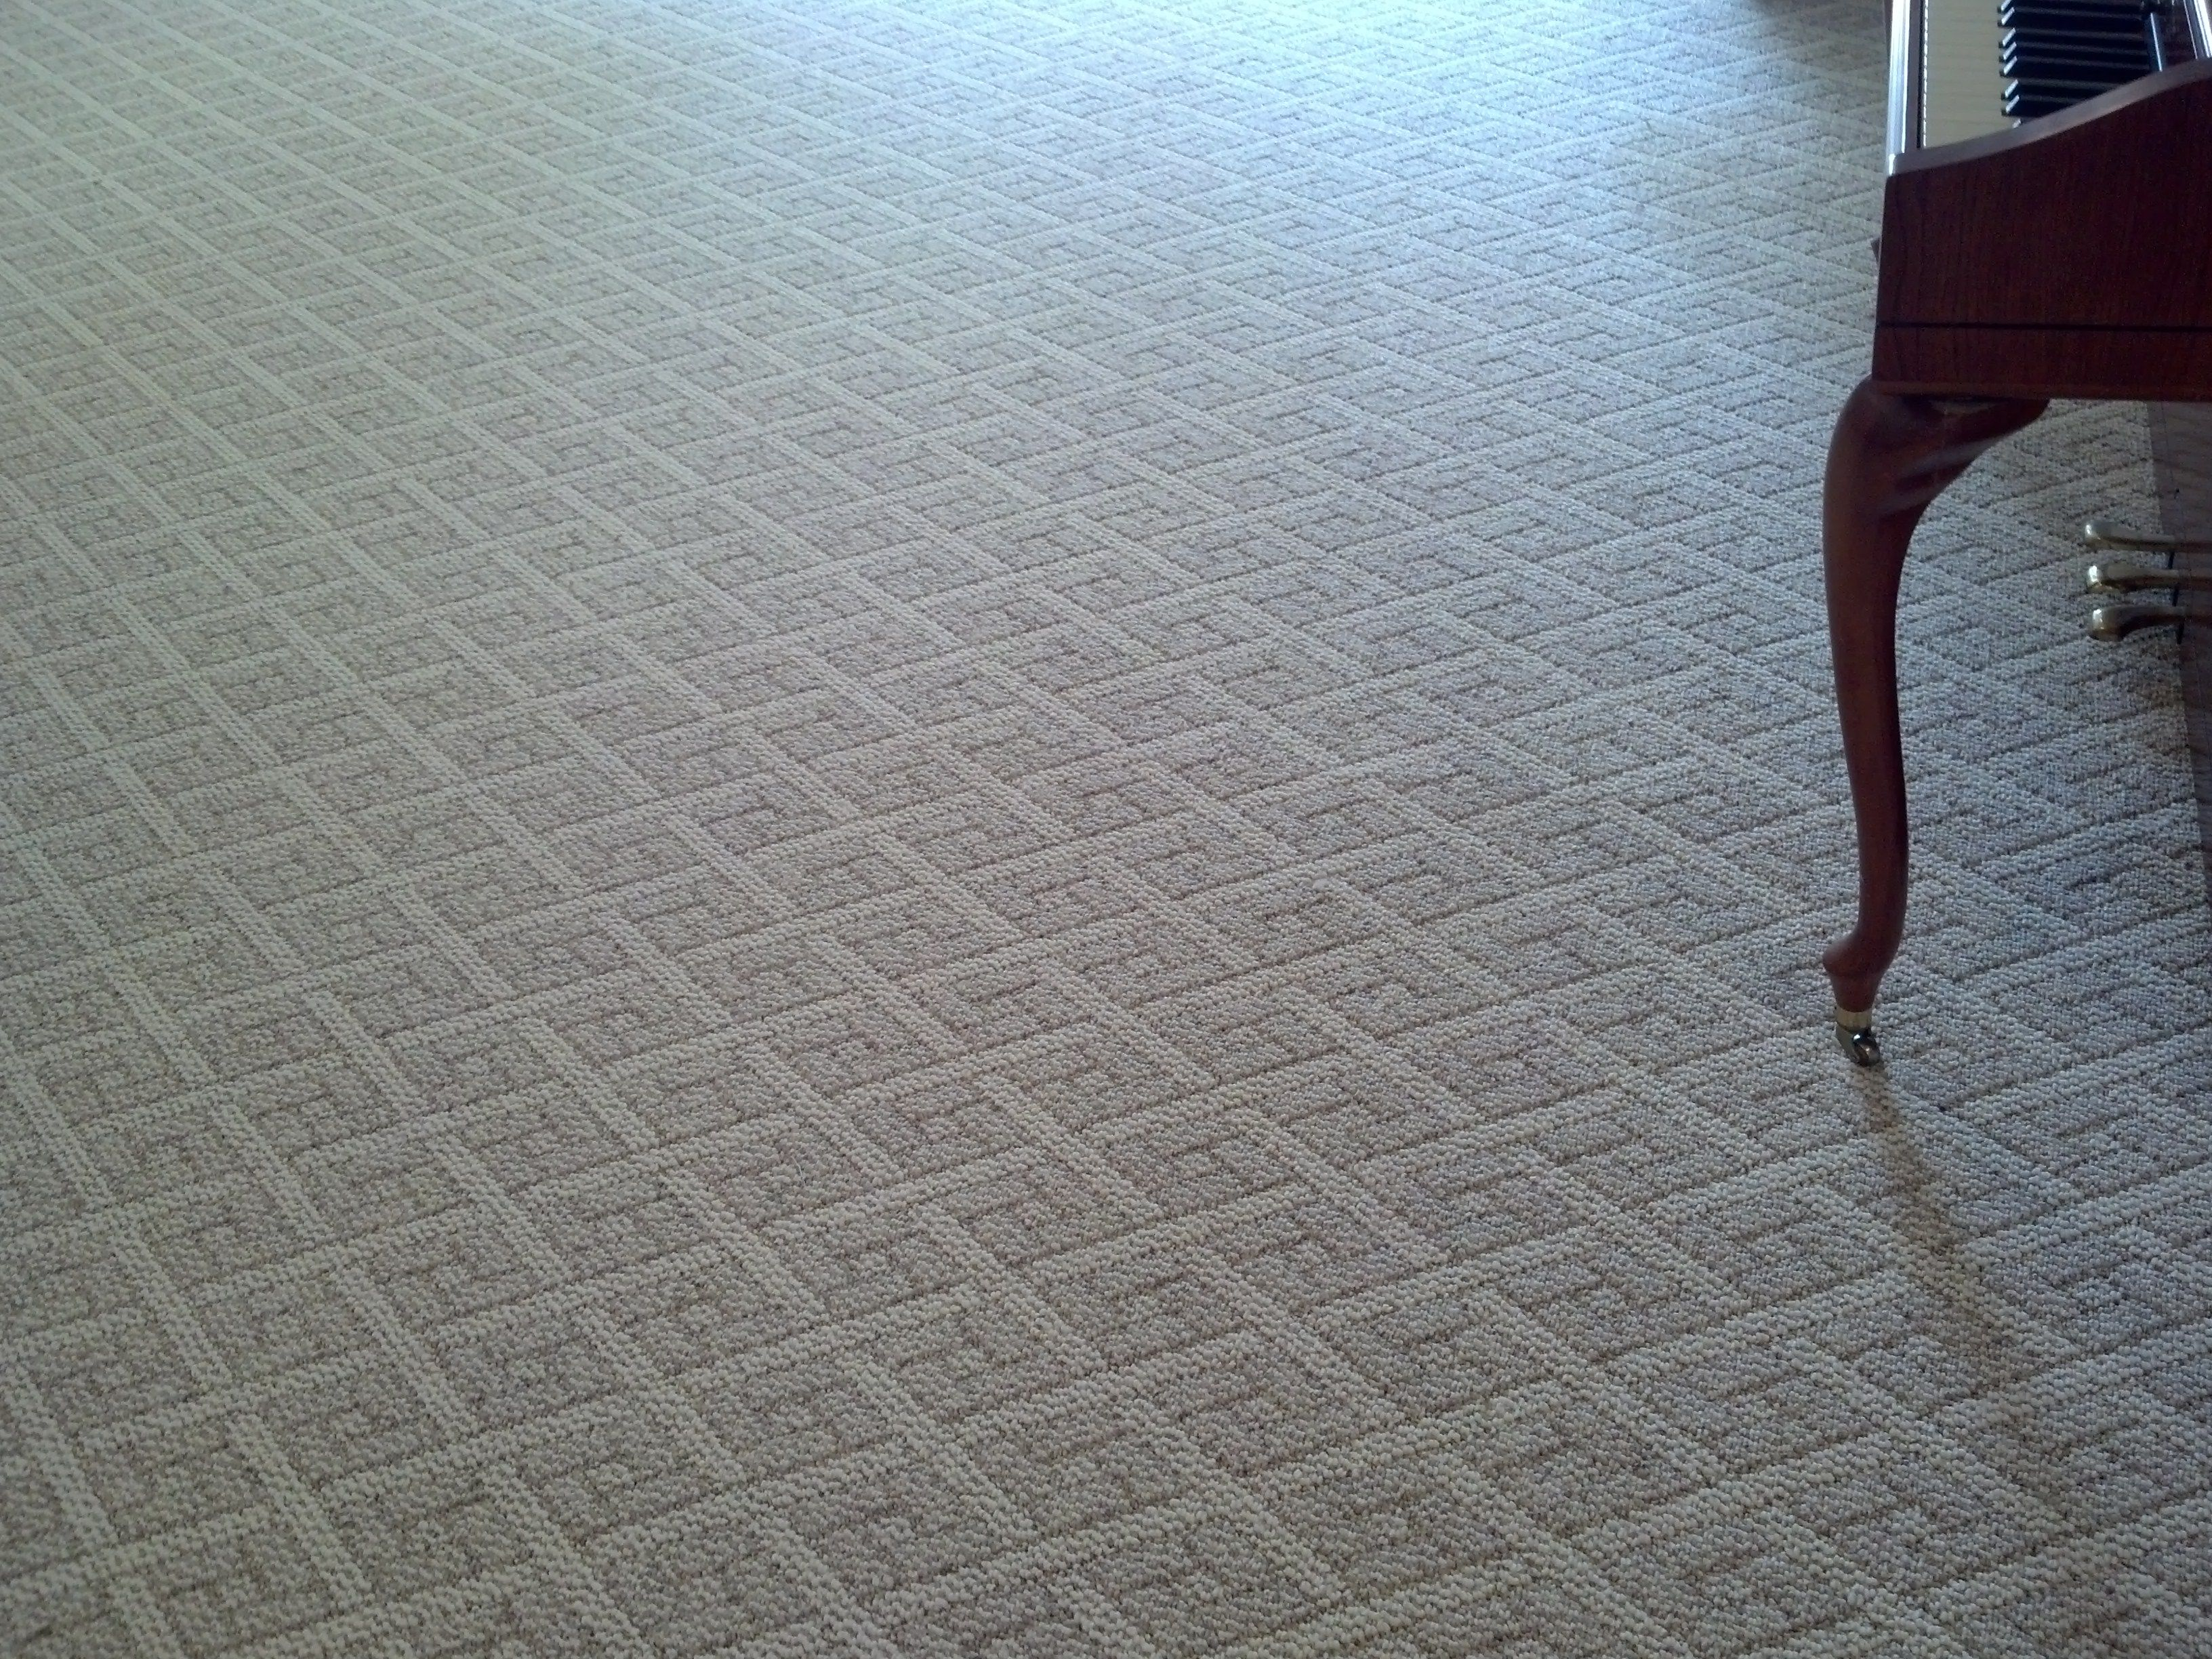 Berber carpet Cincinnati, Oh . South Hampton by Coronet